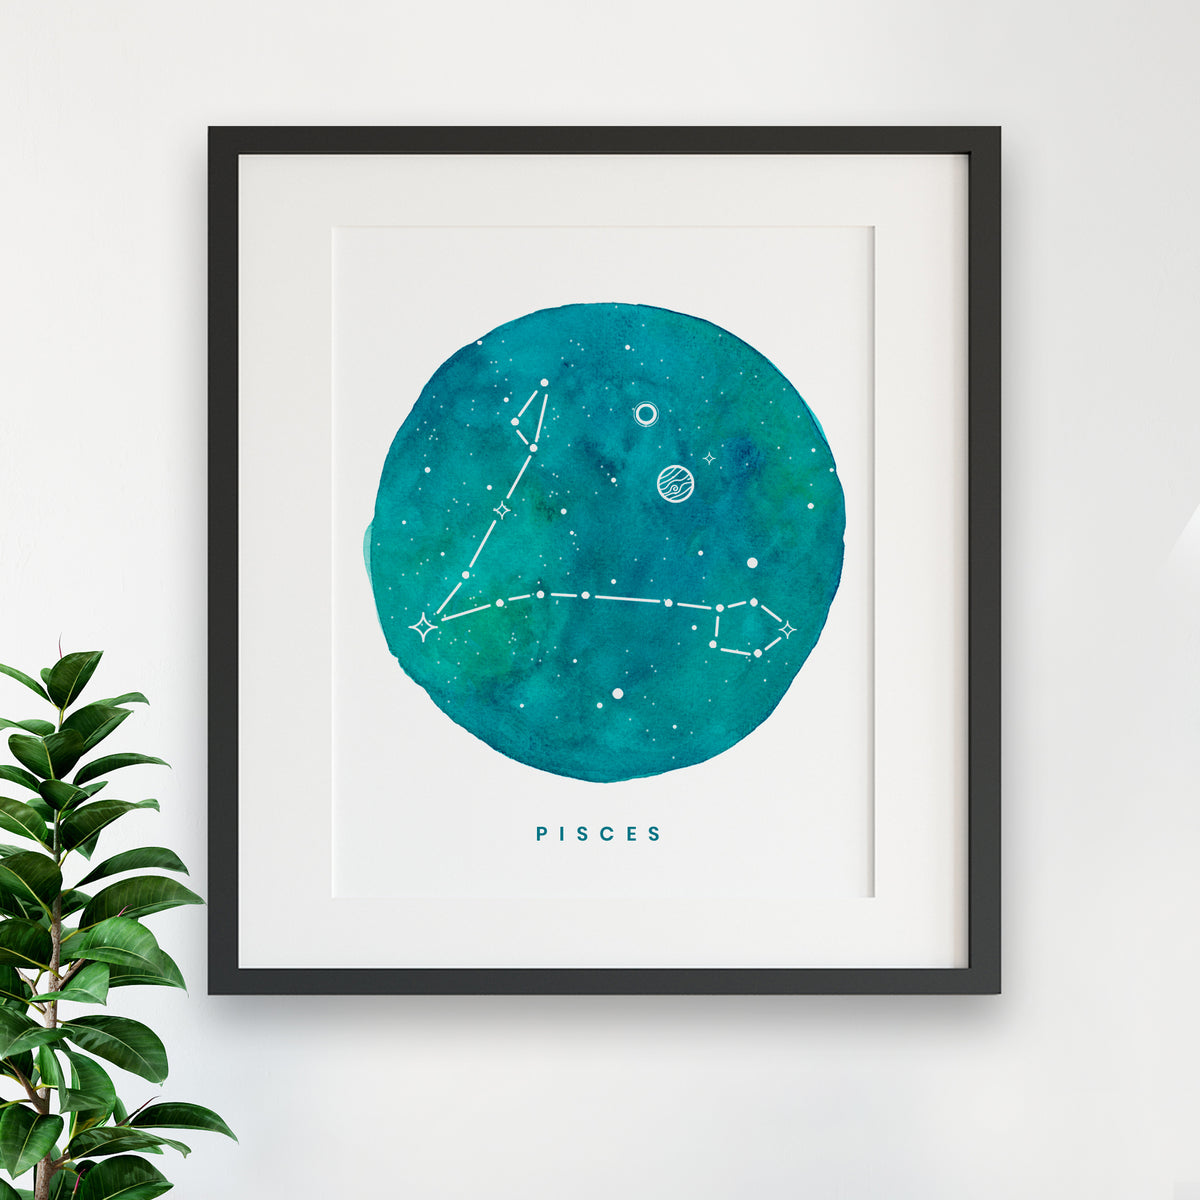 Zodiac Print - PISCES Constellation Watercolor Painting